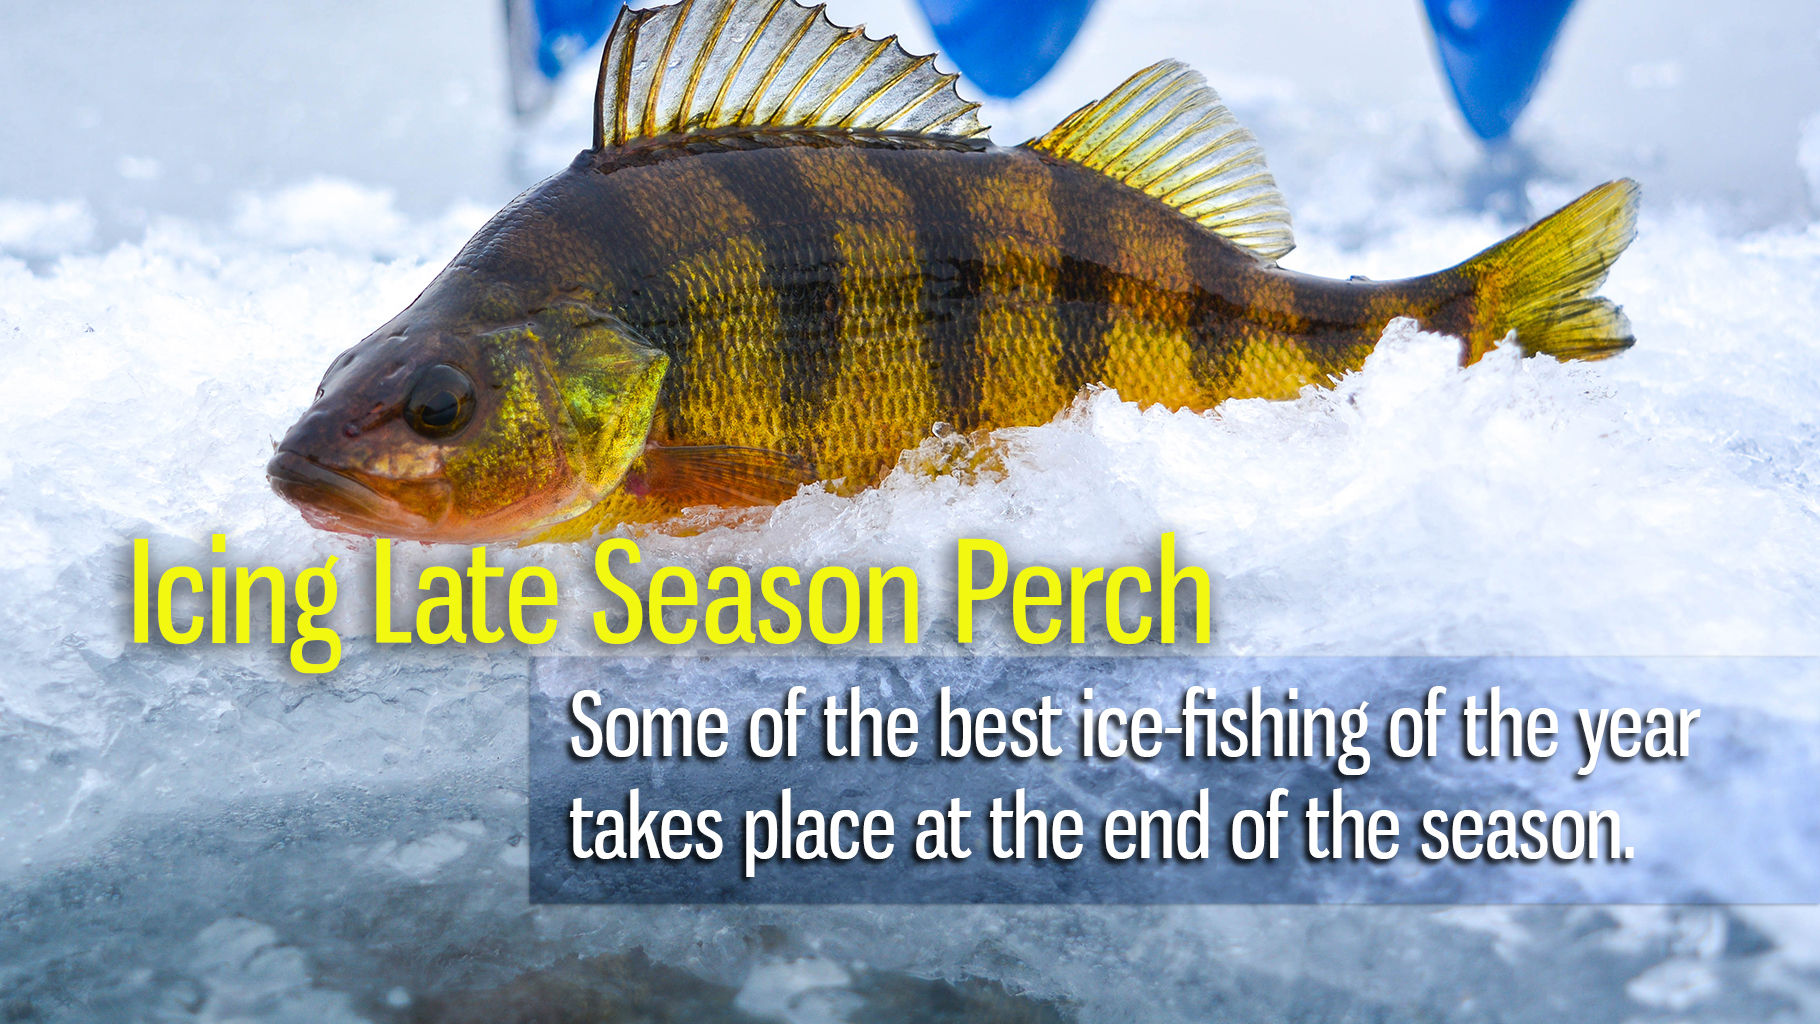 Icing Late Season Perch